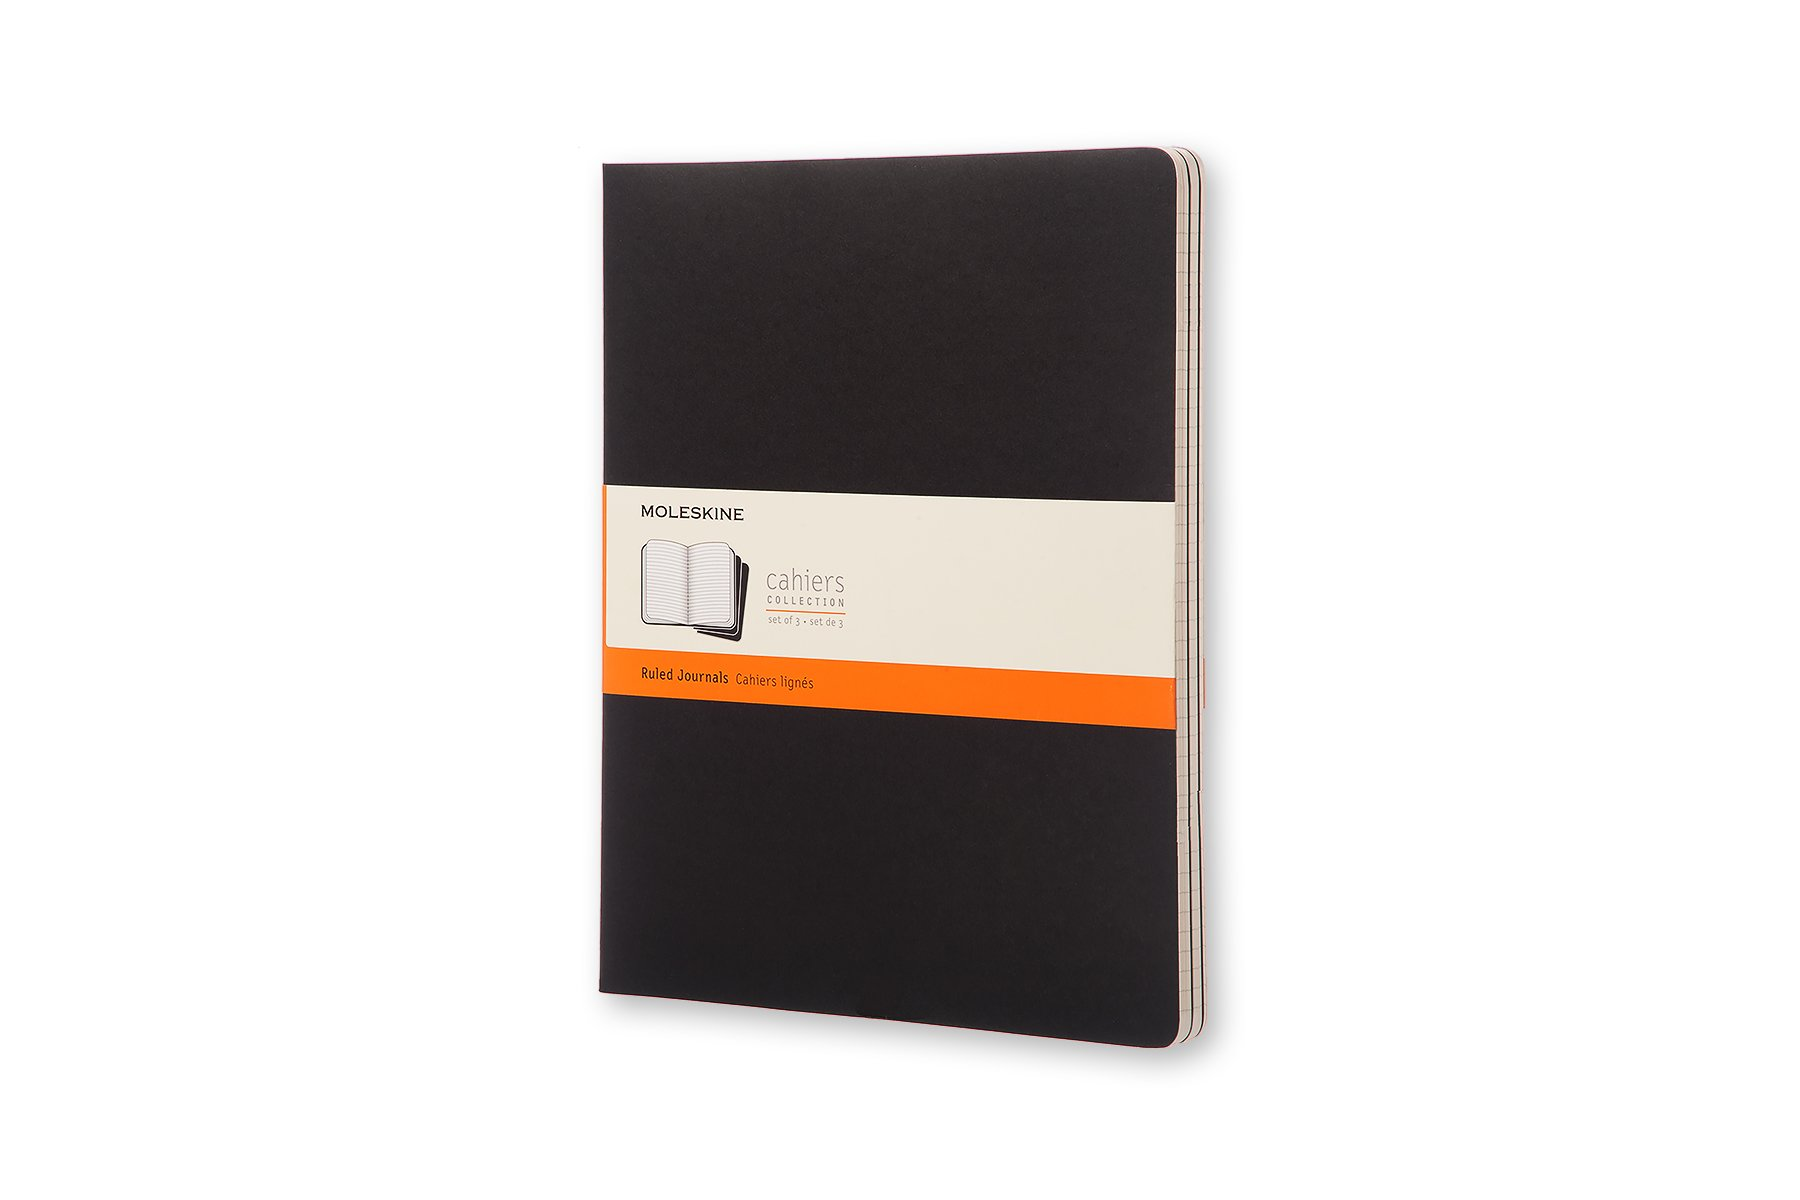 Moleskine Cahier Soft Cover Journal, Set of 3, Ruled, XXL...